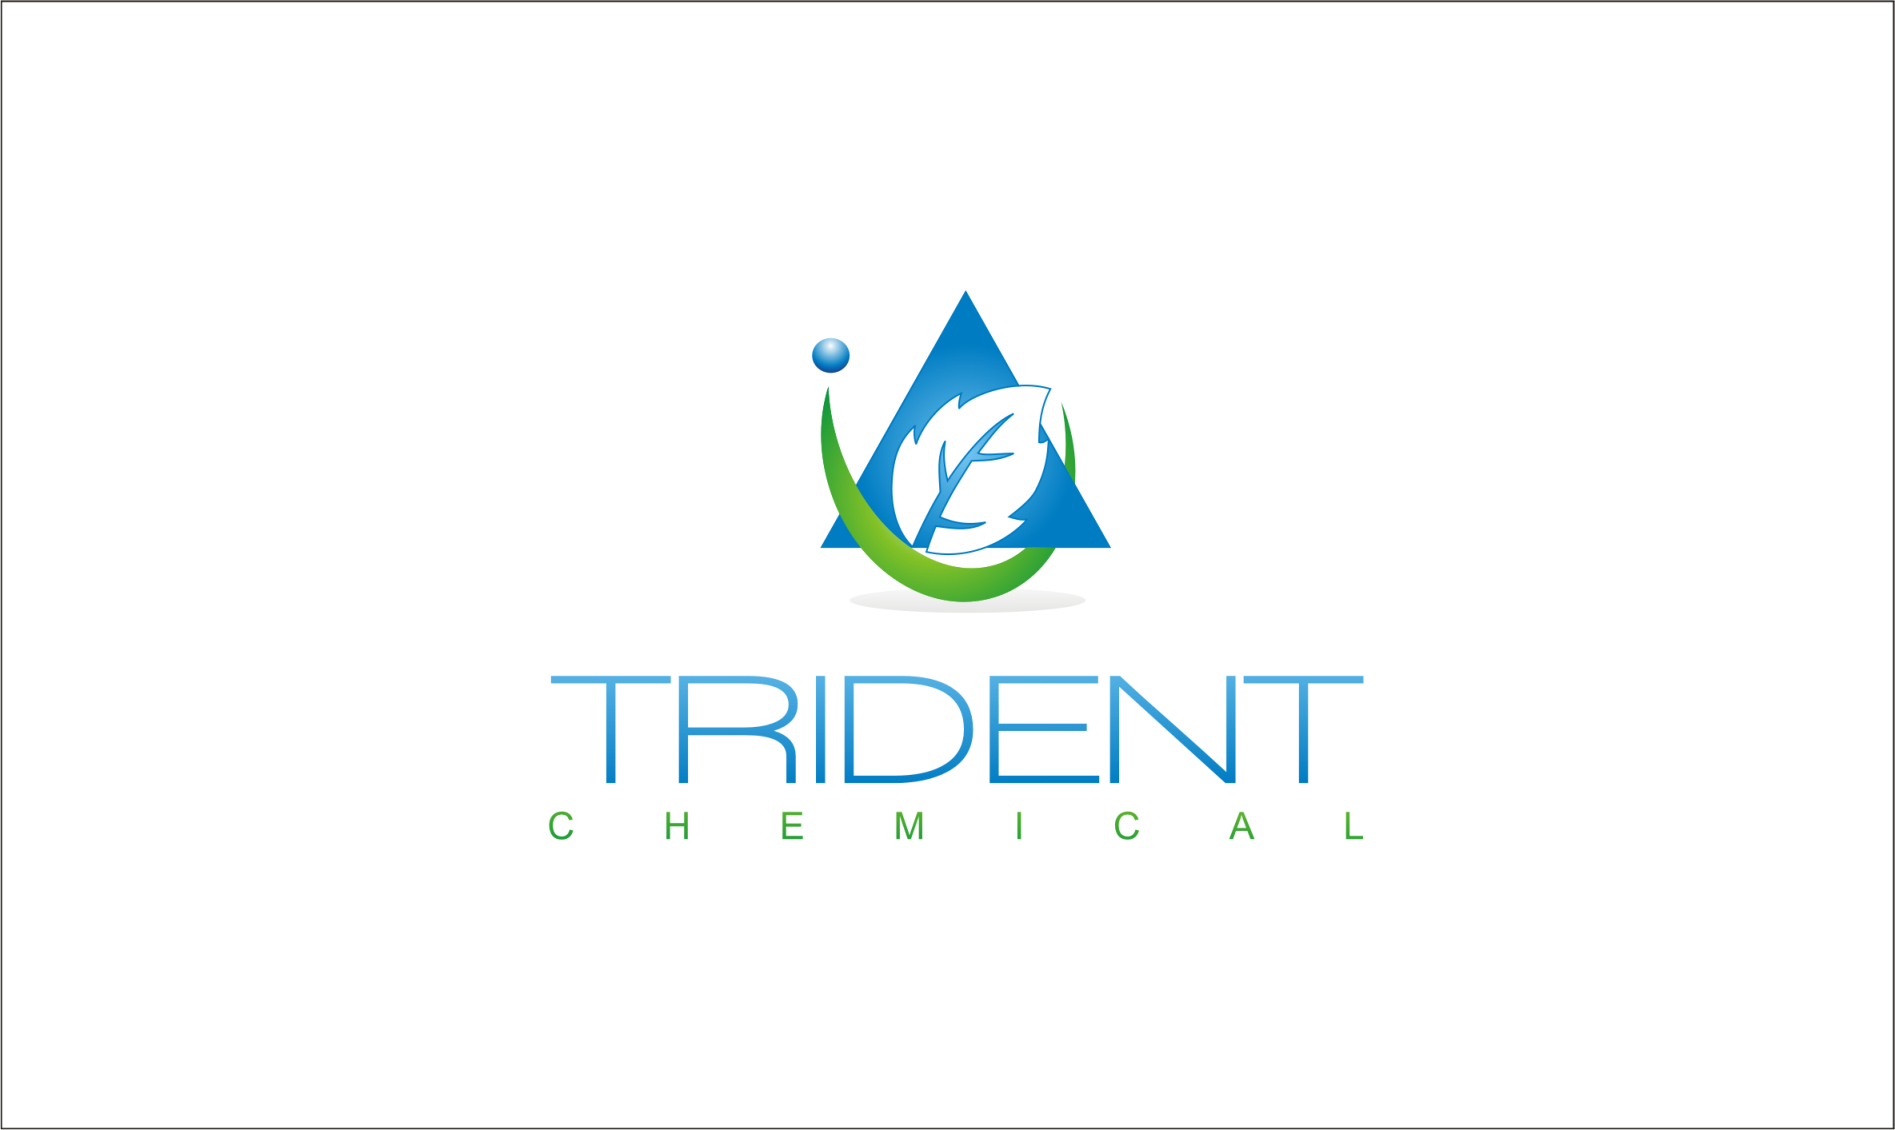 Check out this design for TRIDENT CHEMICAL by MycroBurst.com